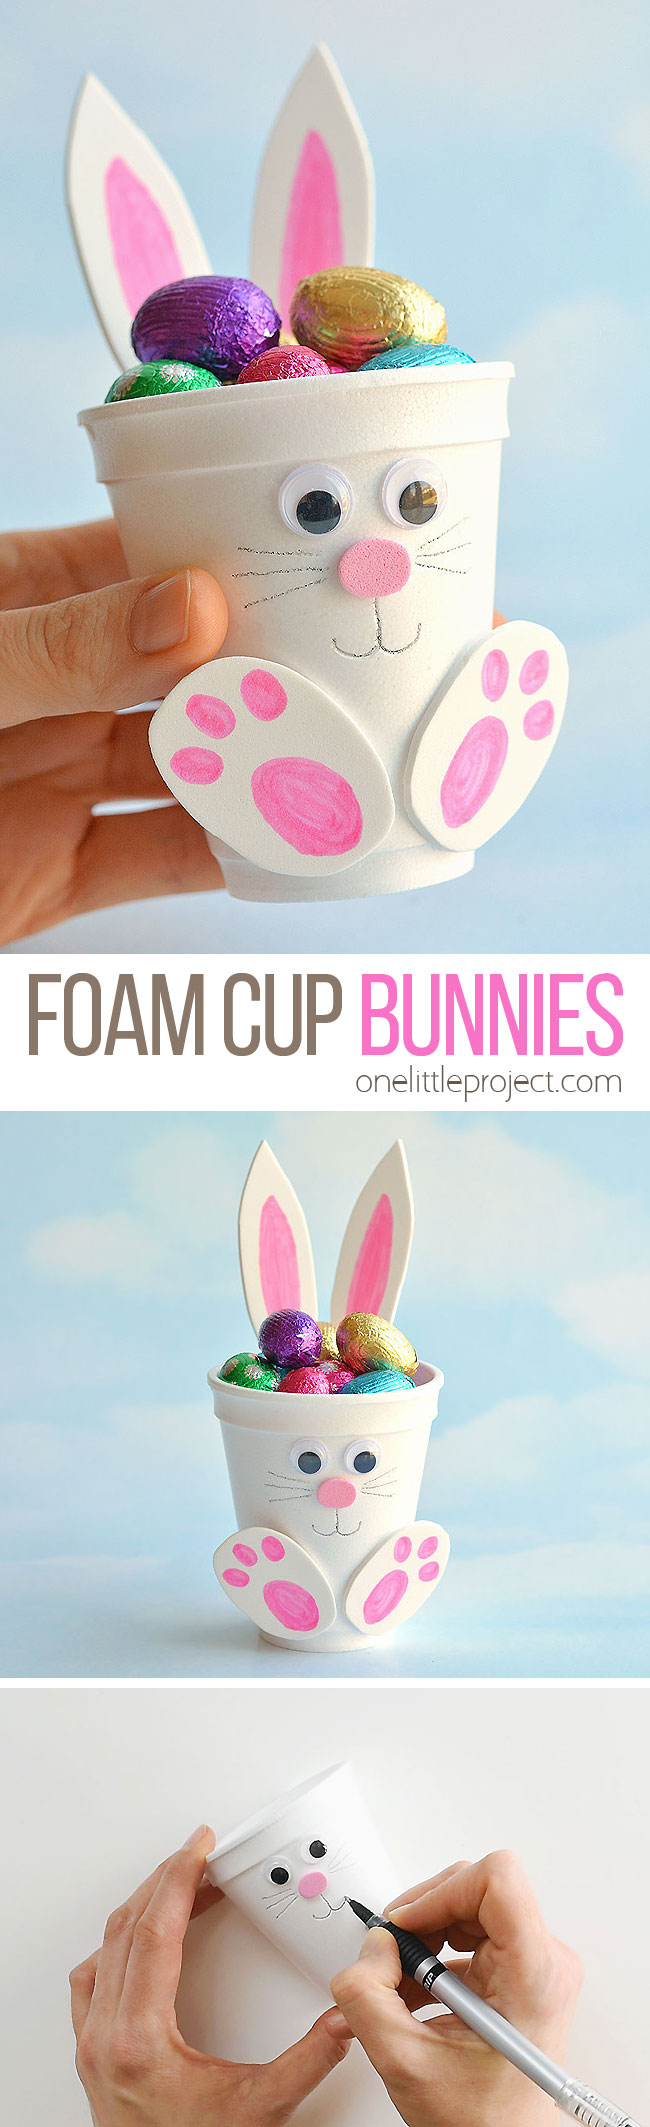 These foam cup bunnies are SO CUTE! I love how easy they are to make with simple craft supplies! Fill them with candy, chocolate eggs, pencil crayons, or even small toys. They take less than 10 minutes and make an awesome Easter treat idea! Make them as a decoration for the Easter table, or give them away as small Easter gifts. This is such a fun Easter craft for kids!